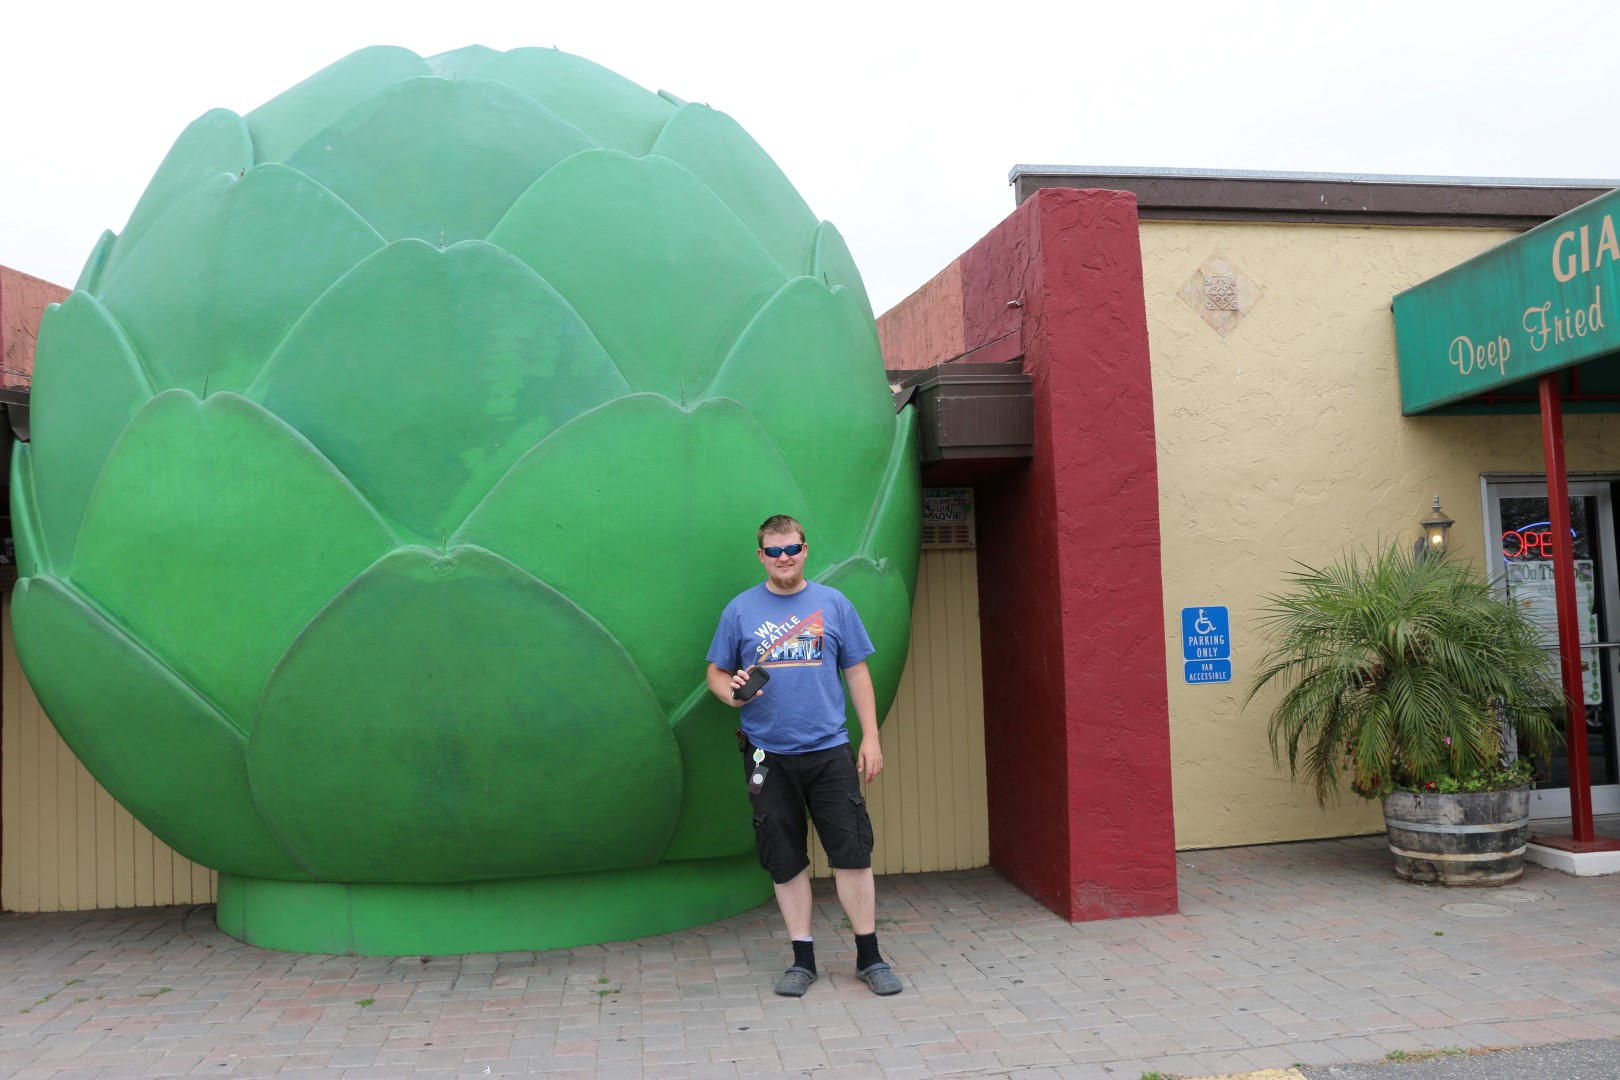 World's largest artichoke